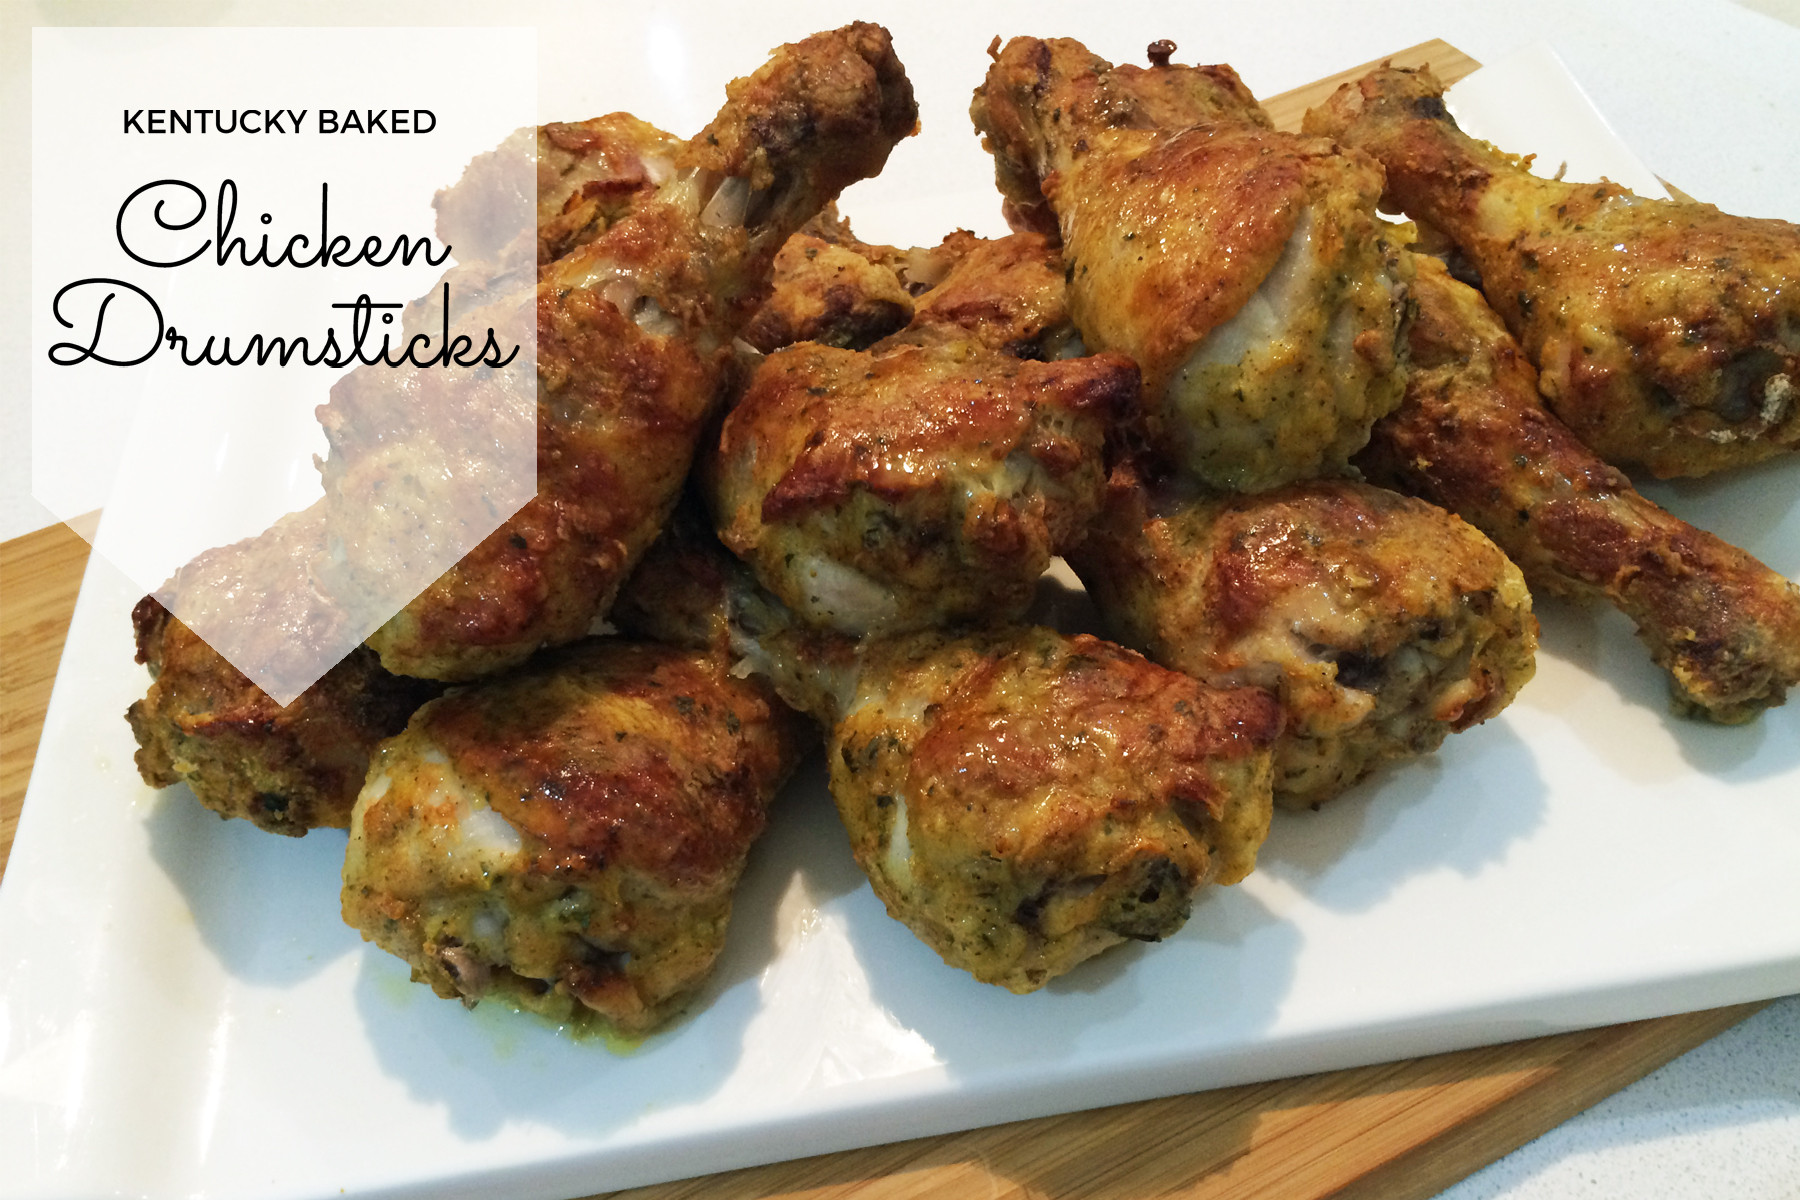 Baked Chicken Drumstick Recipes  Kentucky Baked Chicken Drumsticks Recipe Mum s Lounge